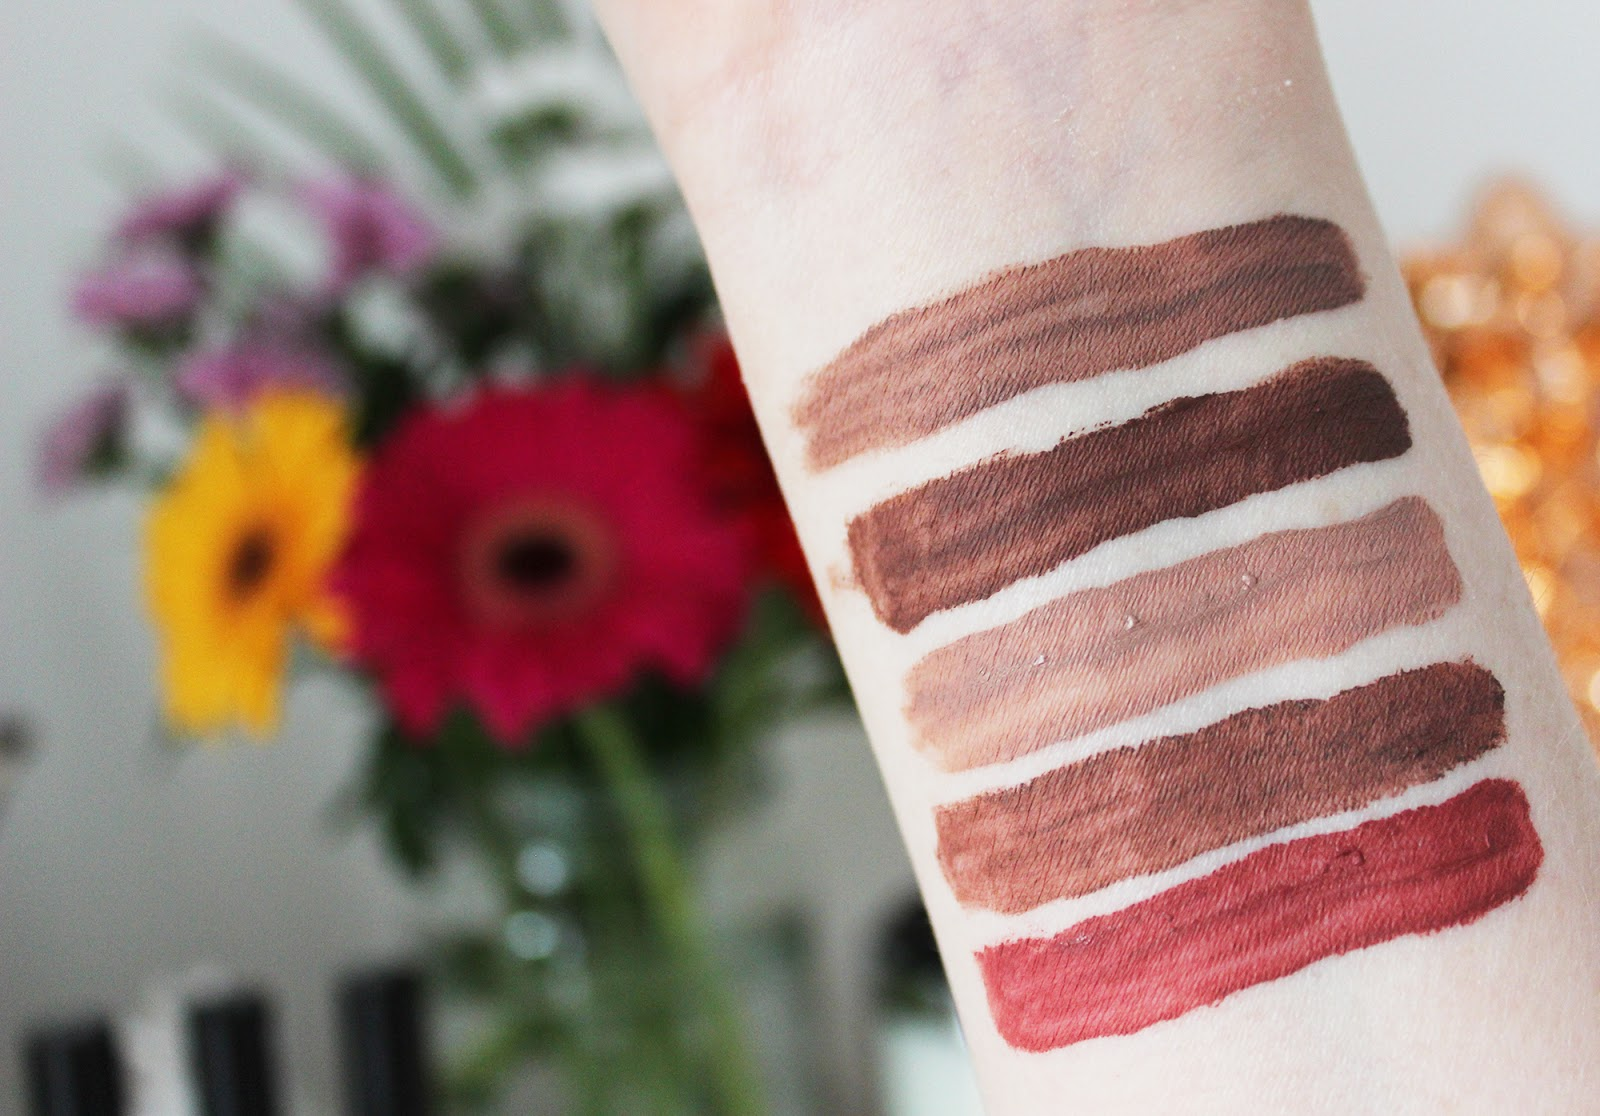 NYX lip lingerie liquid lipsticks swatches